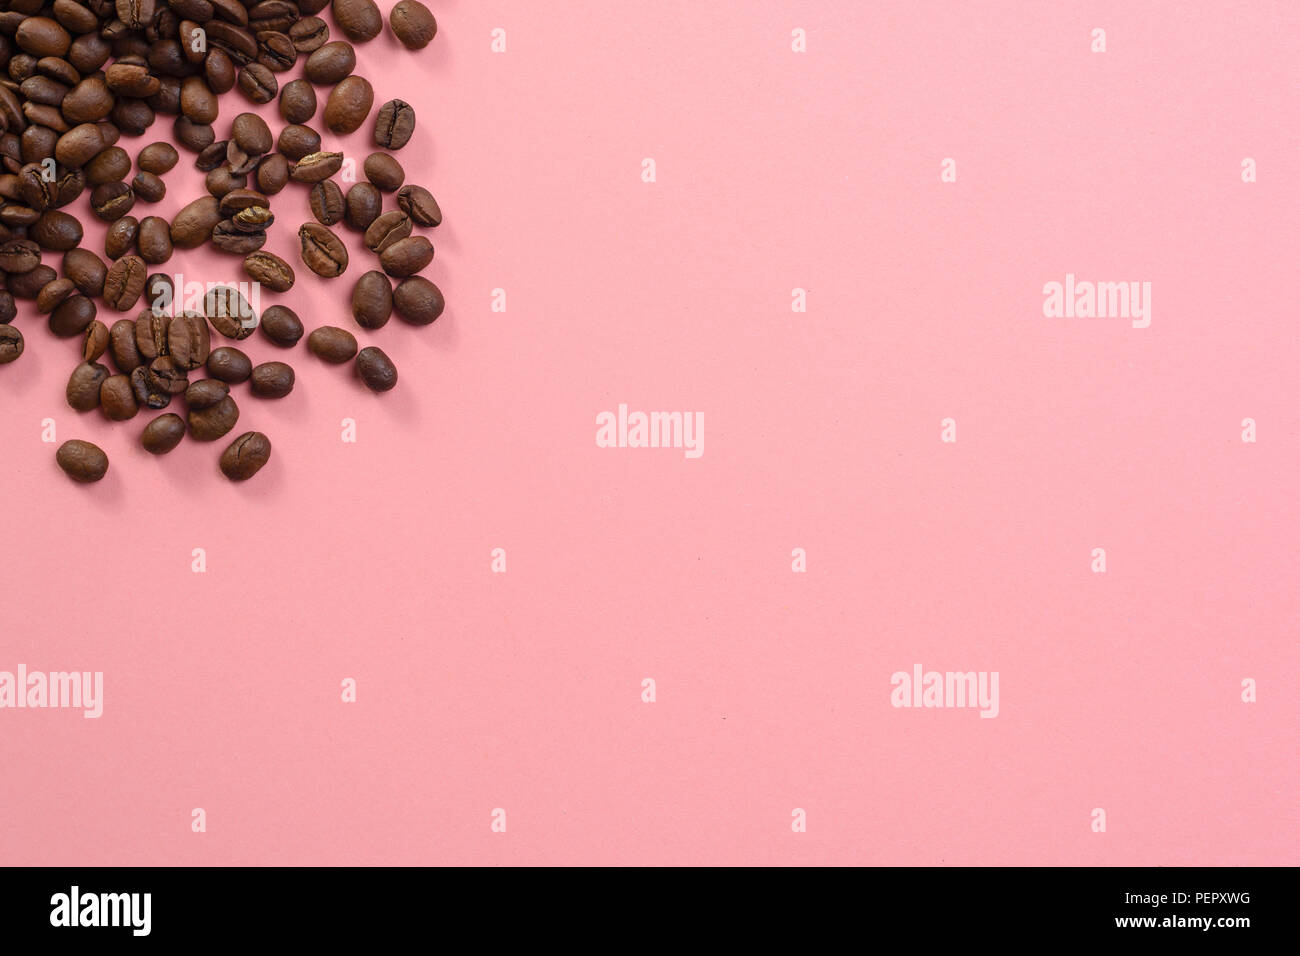 Lots of coffee beans on pastel background website textspace - Stock Image